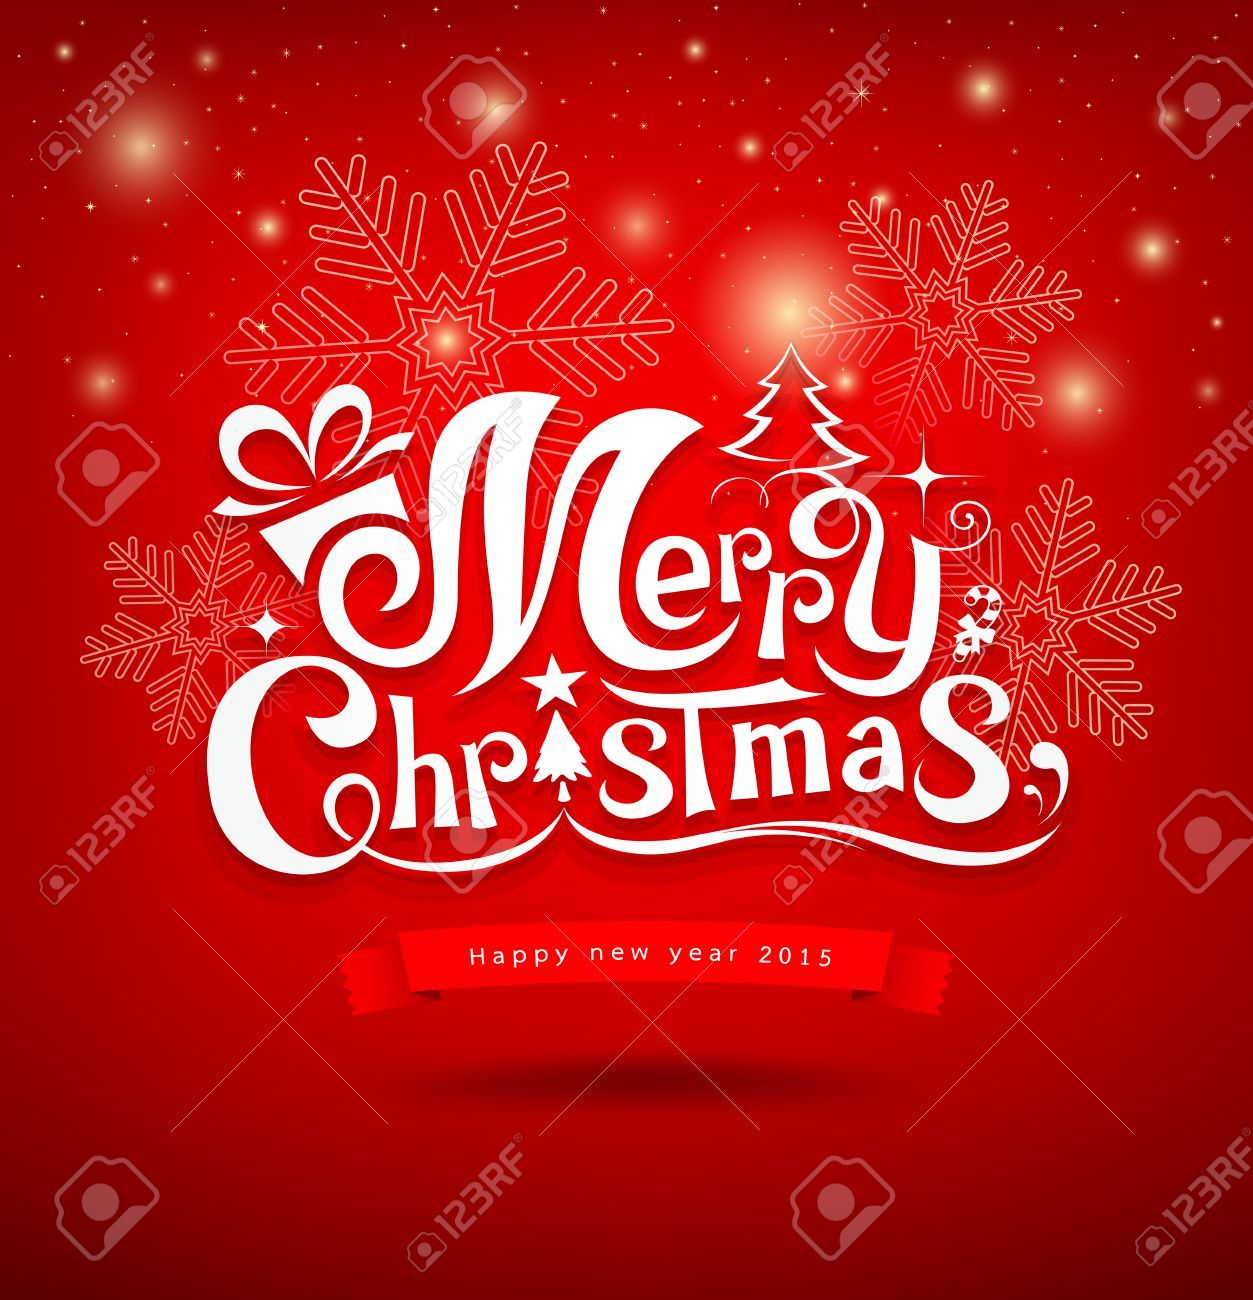 Merry Christmas Greeting Card Lettering Design Stock Vector   34549281